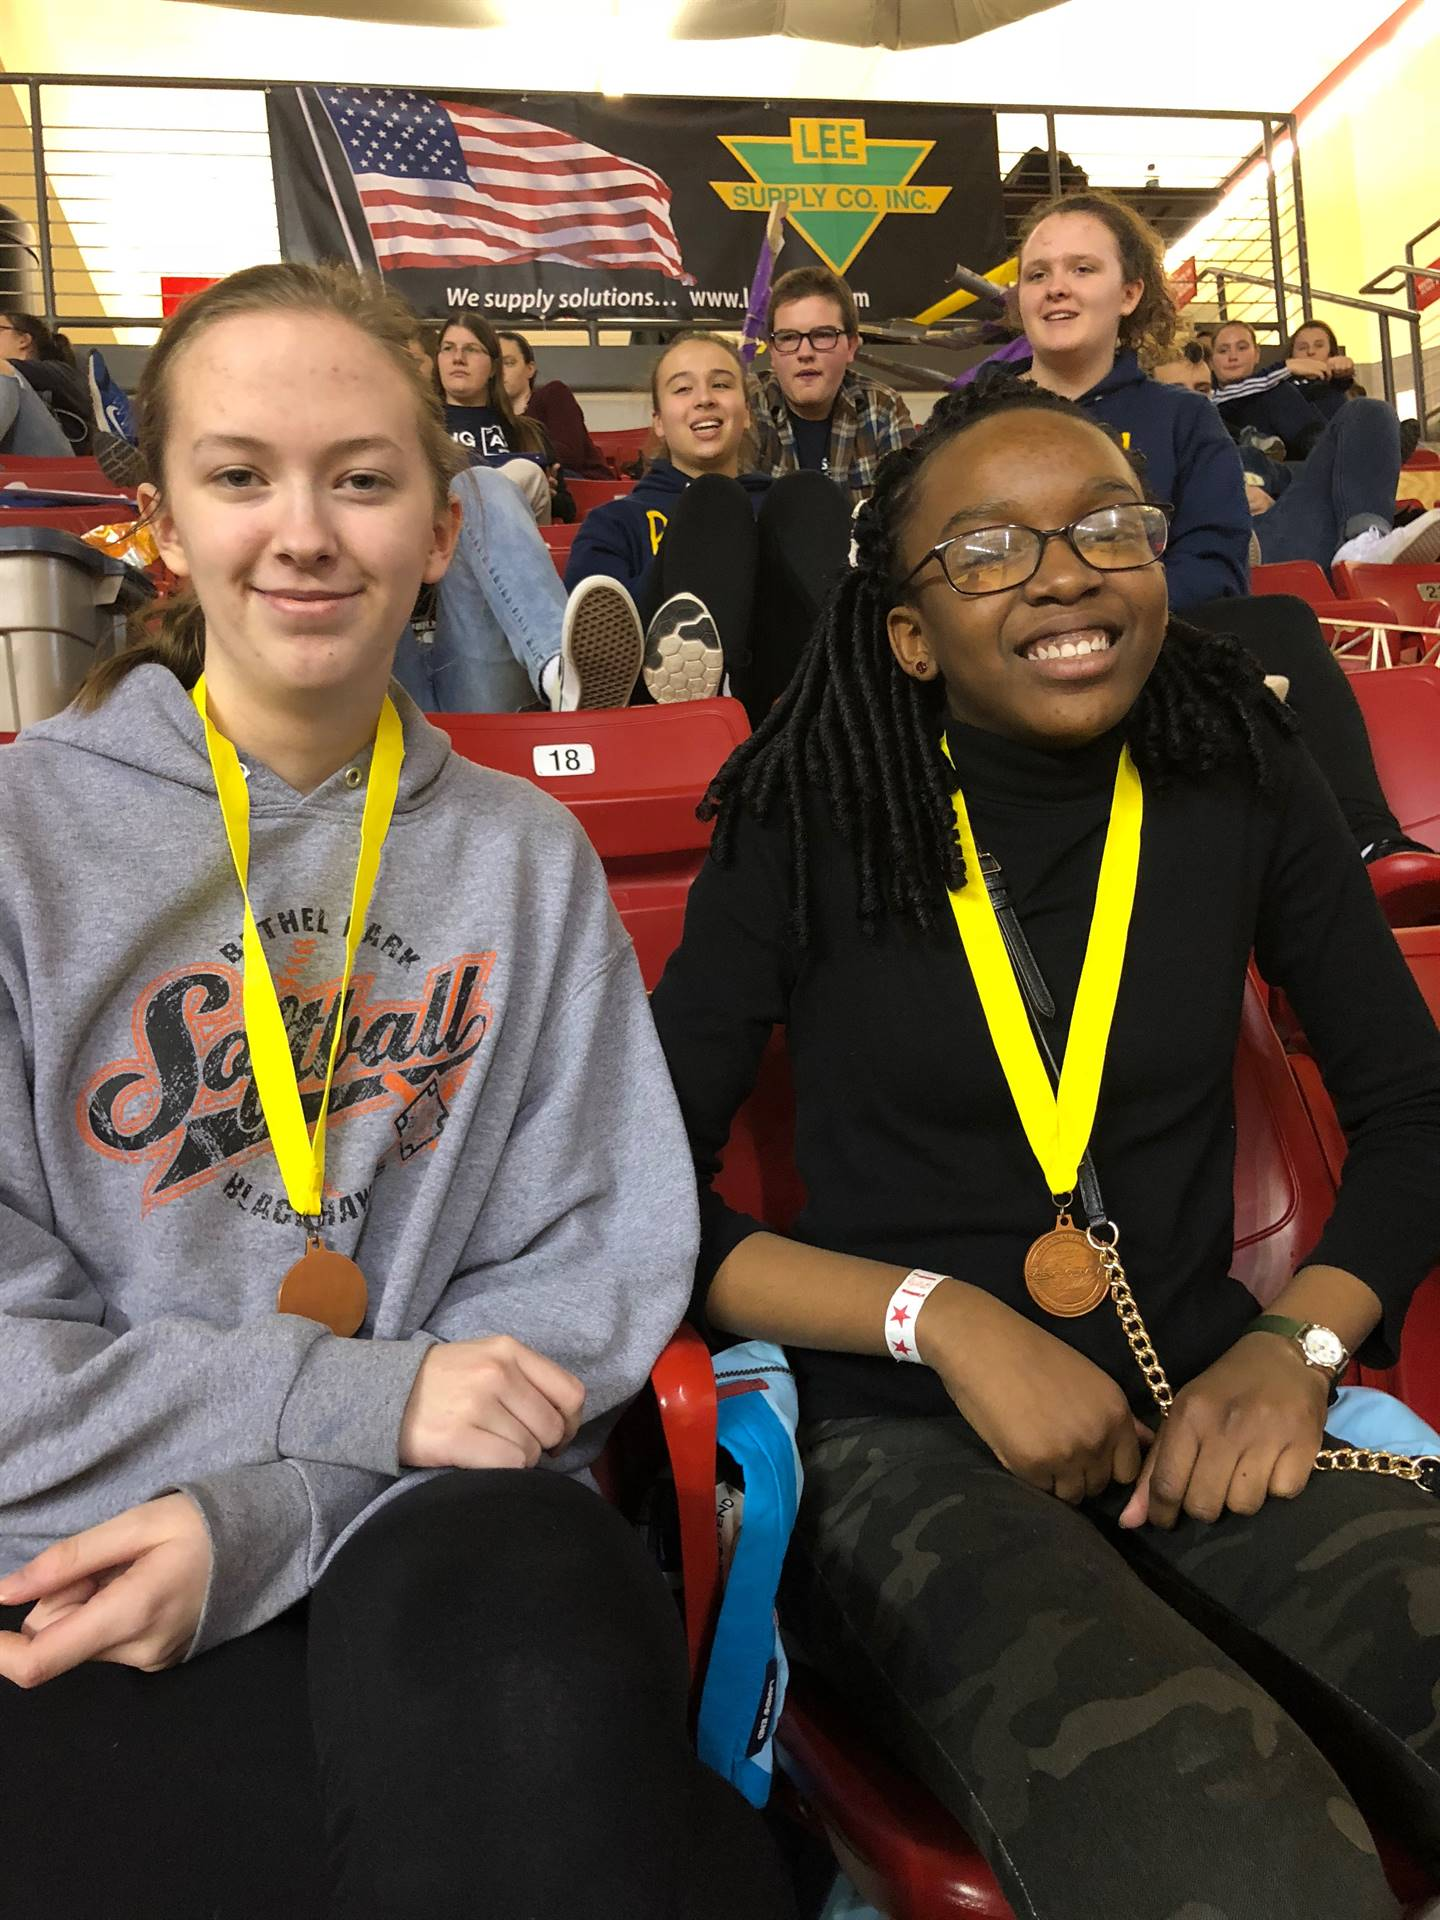 Science Olympiad - 4th Place Winners of Fast Facts and Meteorology!